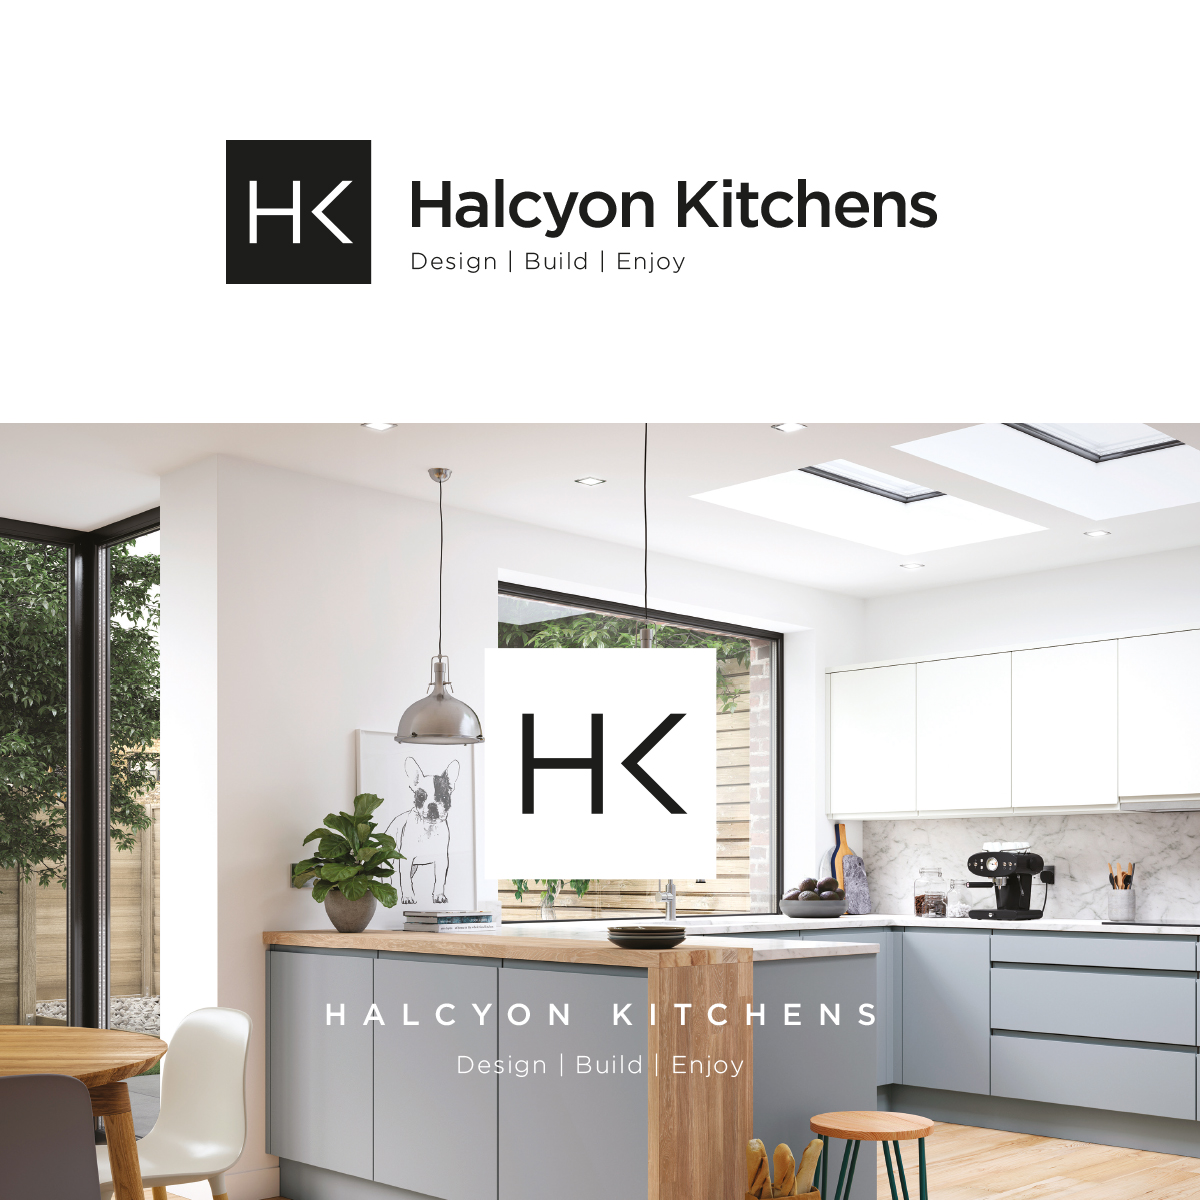 Halcyon Kitchens